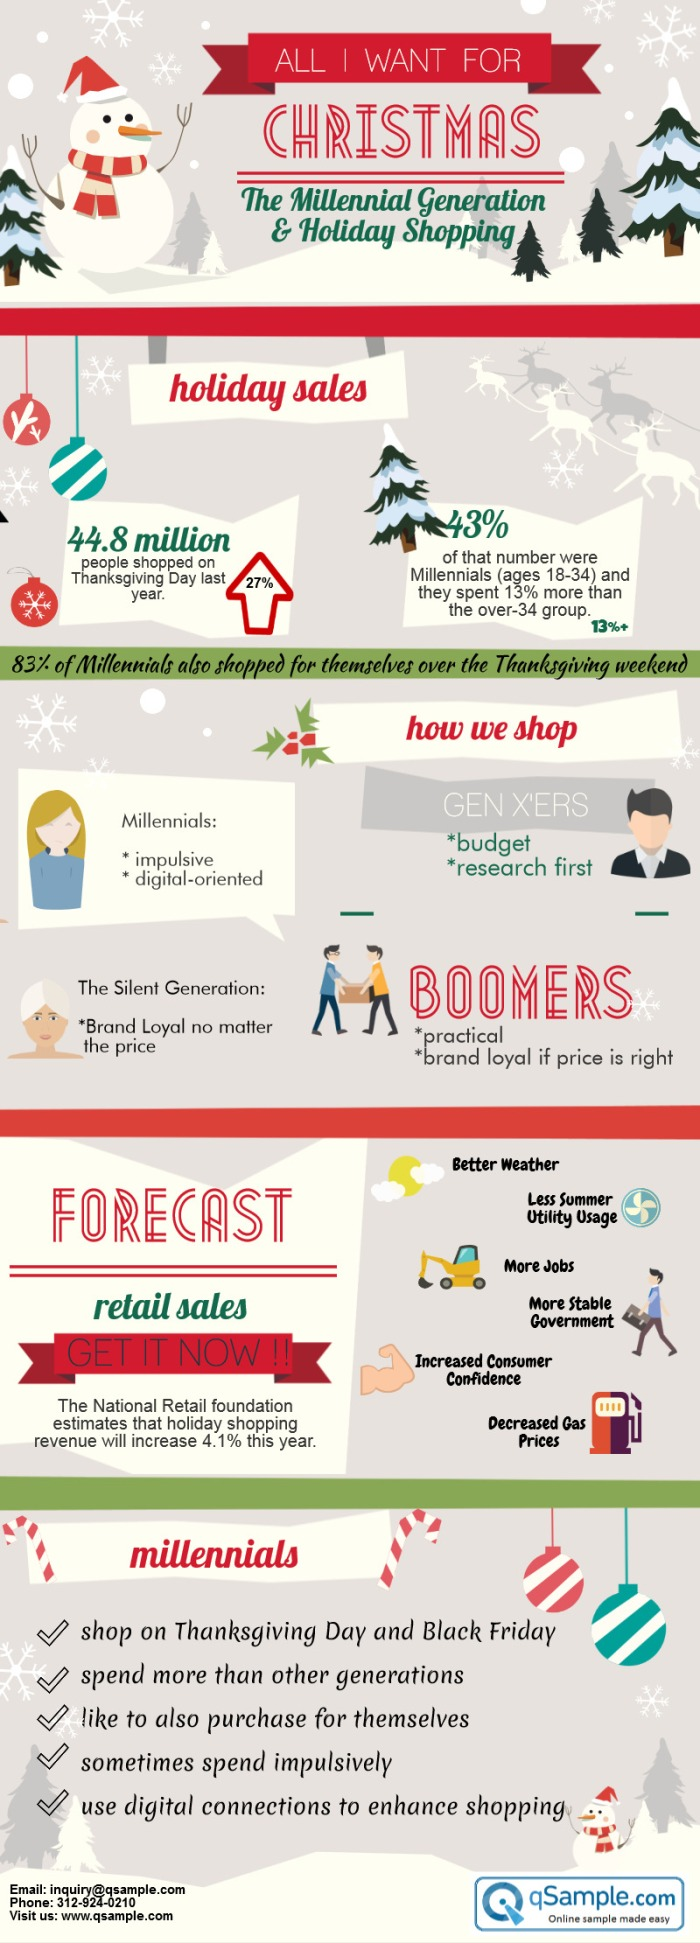 Millennials and Holiday Shopping